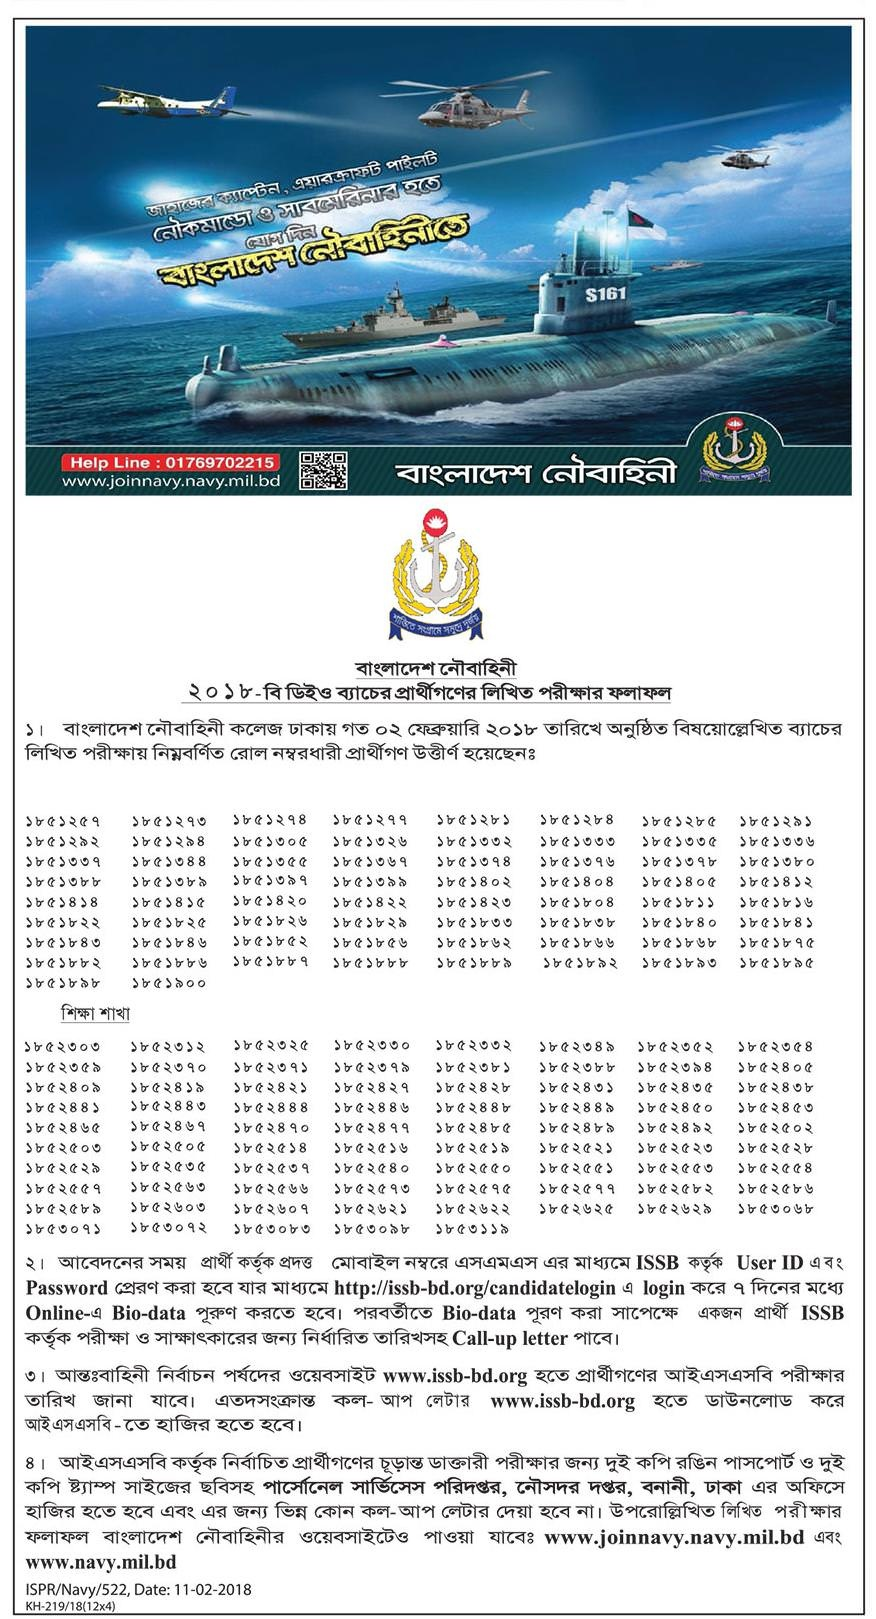 Bangladesh Navy Jobs Exam Result 2018